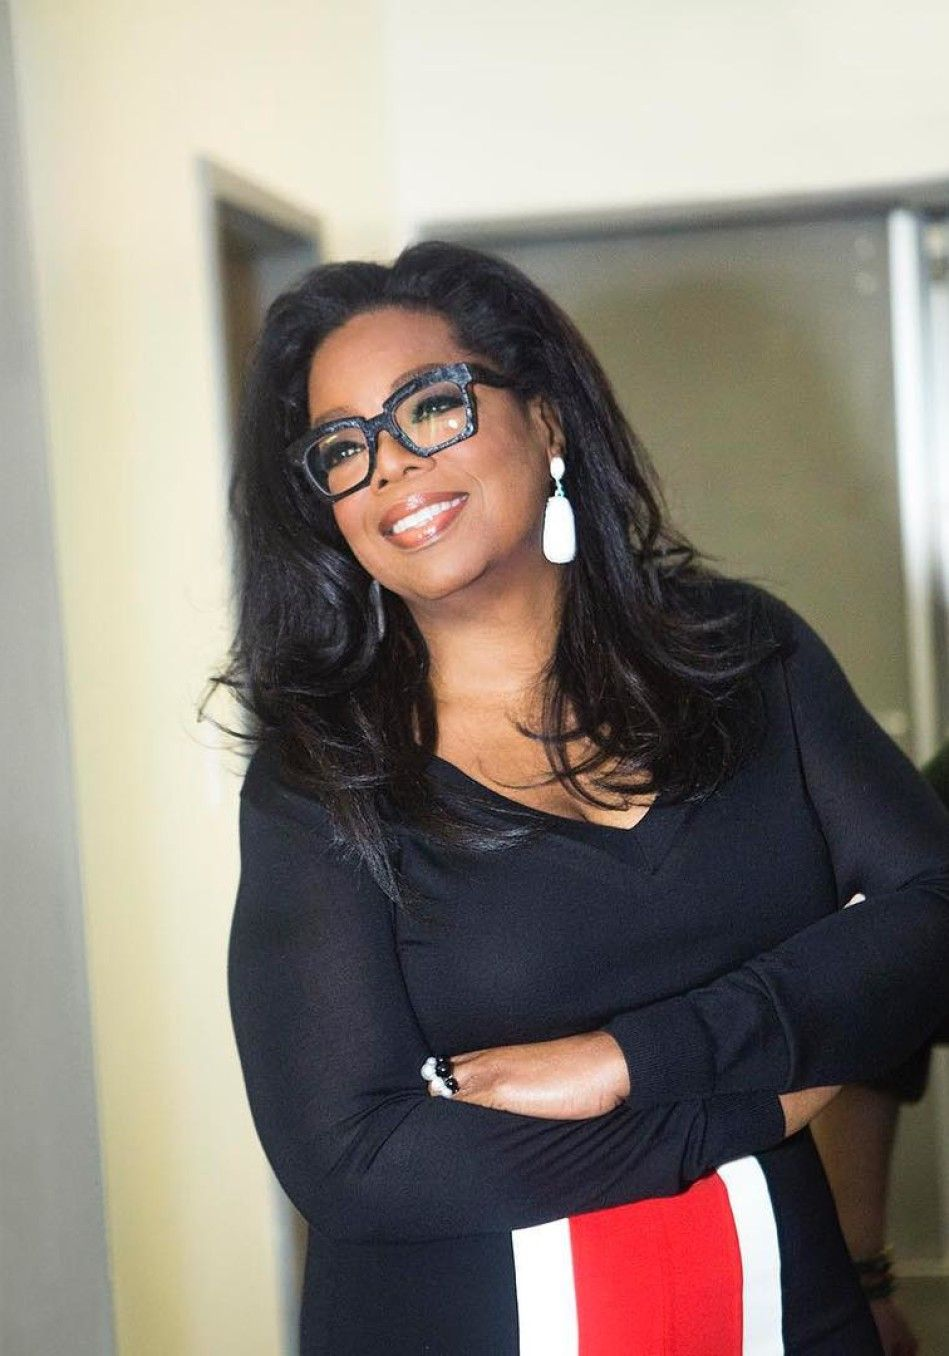 919117cd54f It s no secret Oprah is a major fan of glasses—and so are we. Here are some  of her looks we loved.